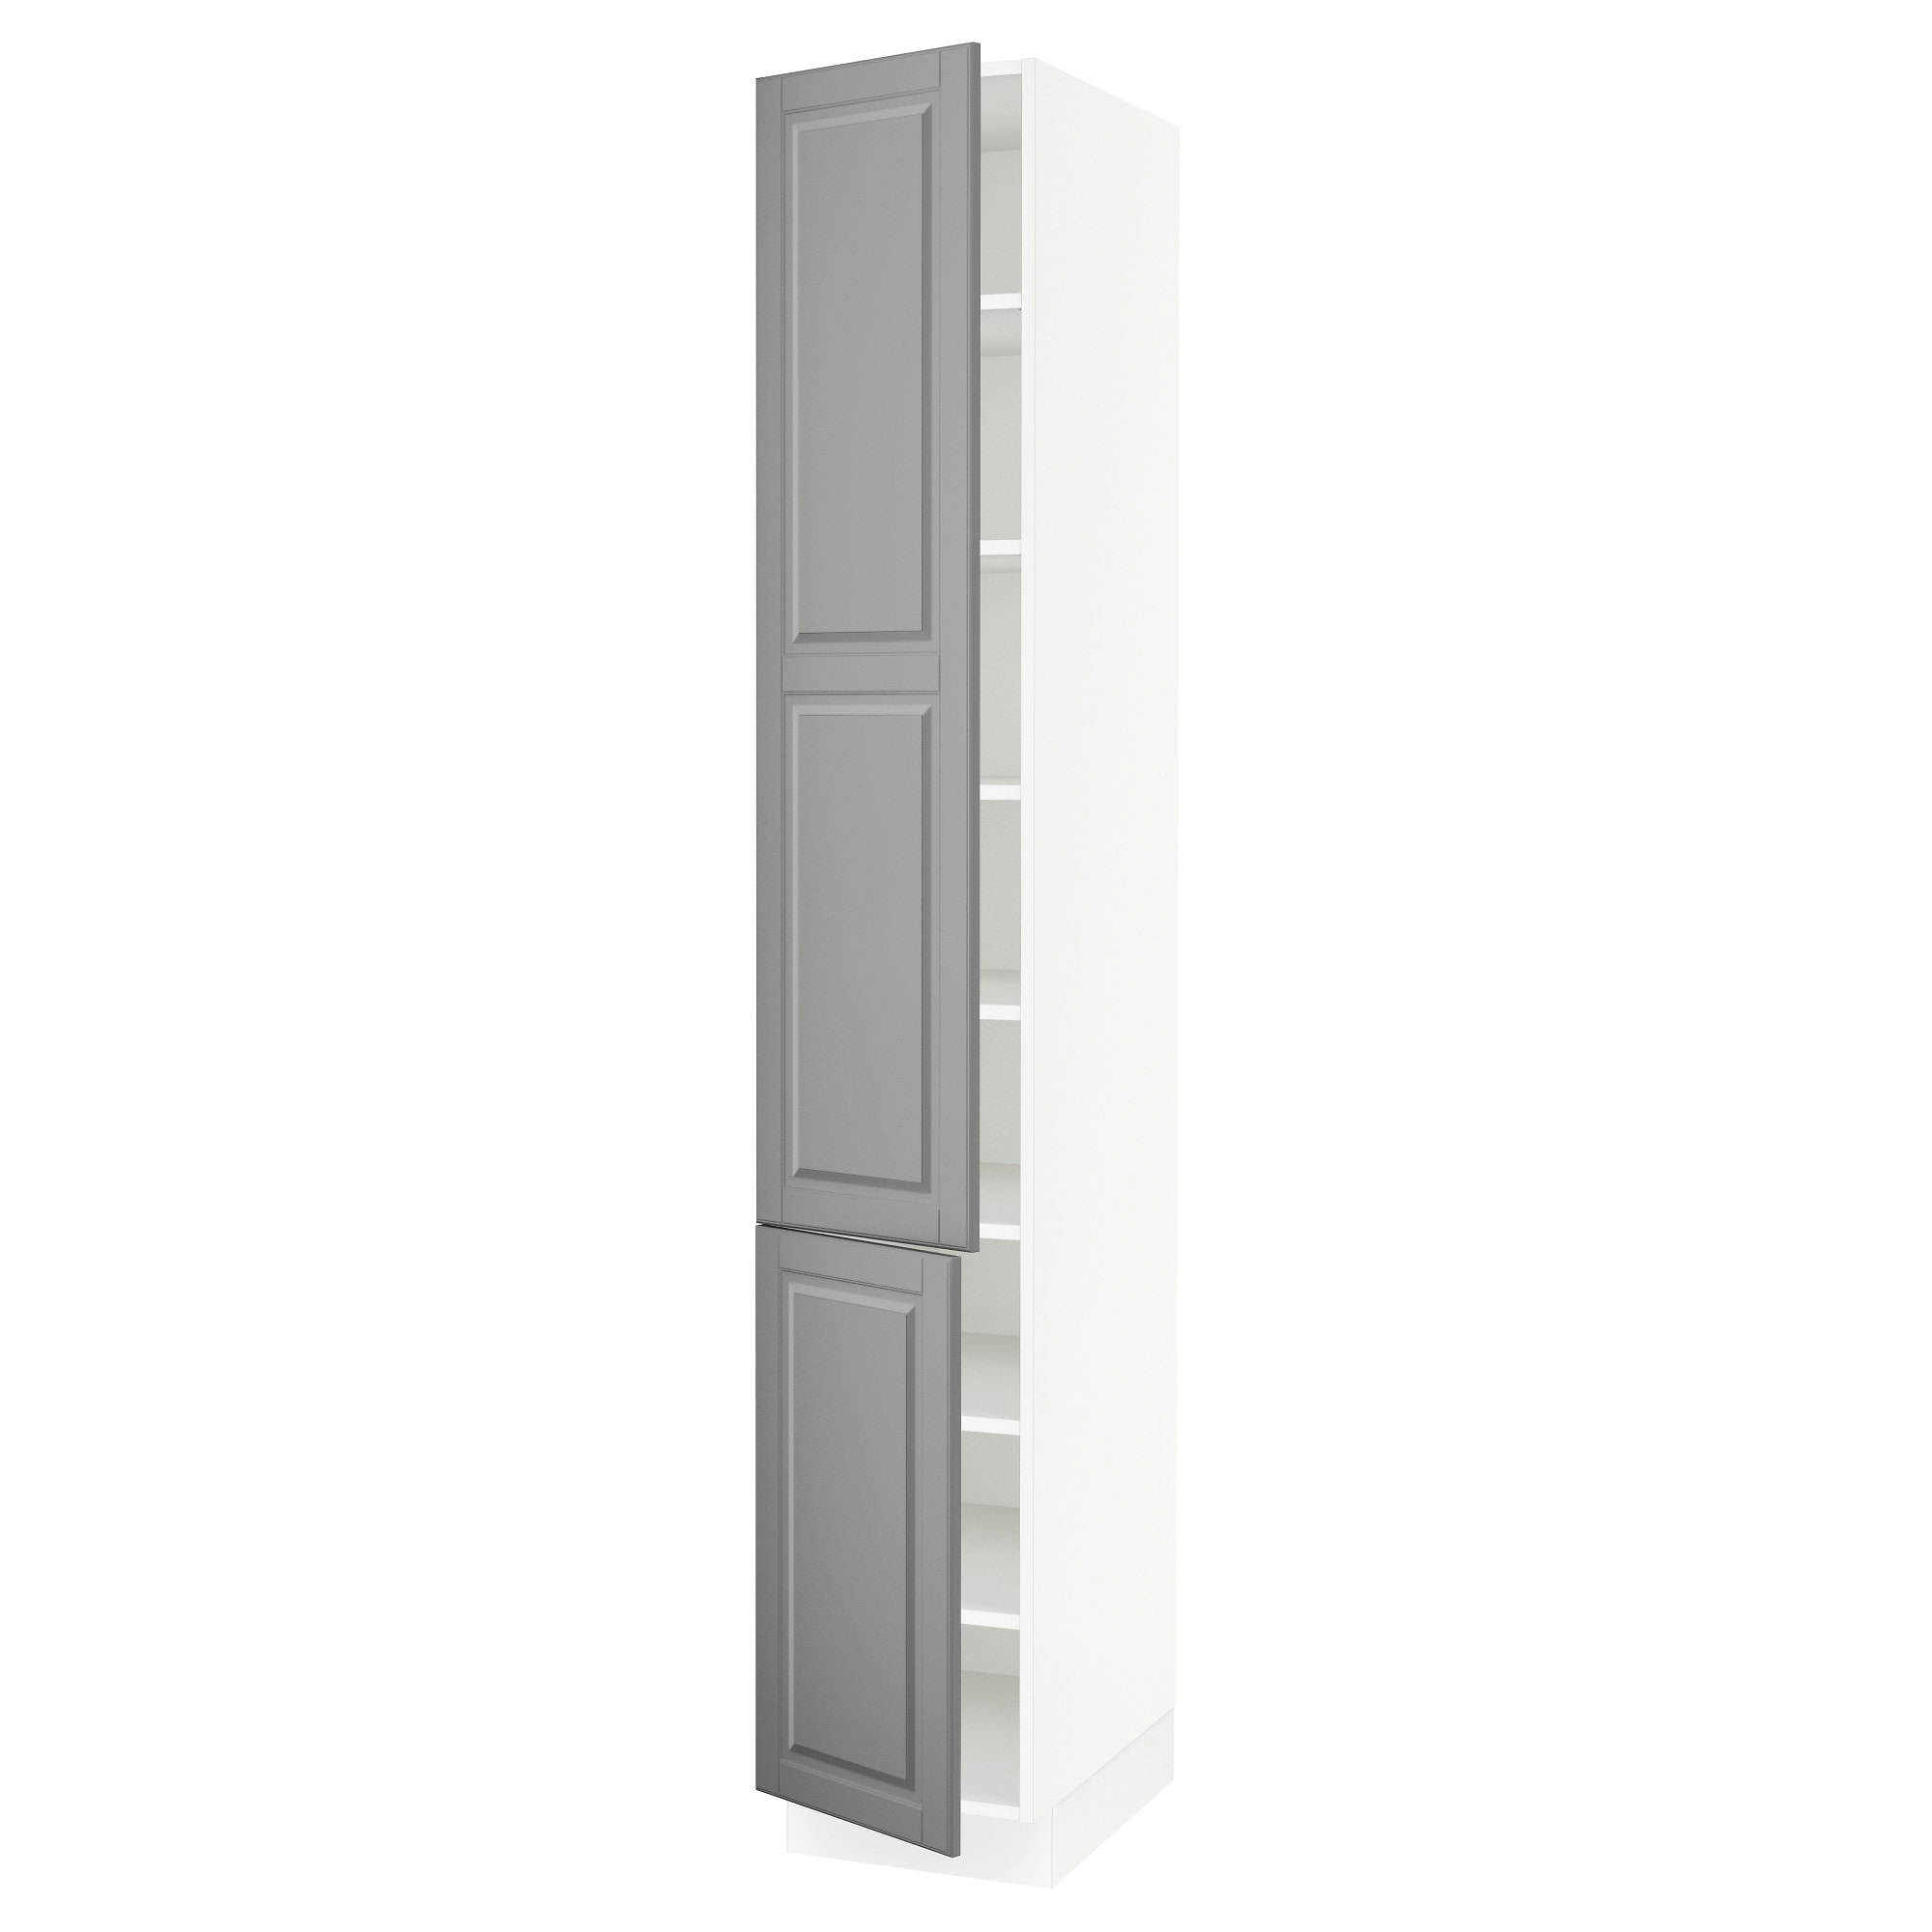 15 Inch Deep Wall Cabinets Tall Kitchen Cabinets Sektion System Ikea